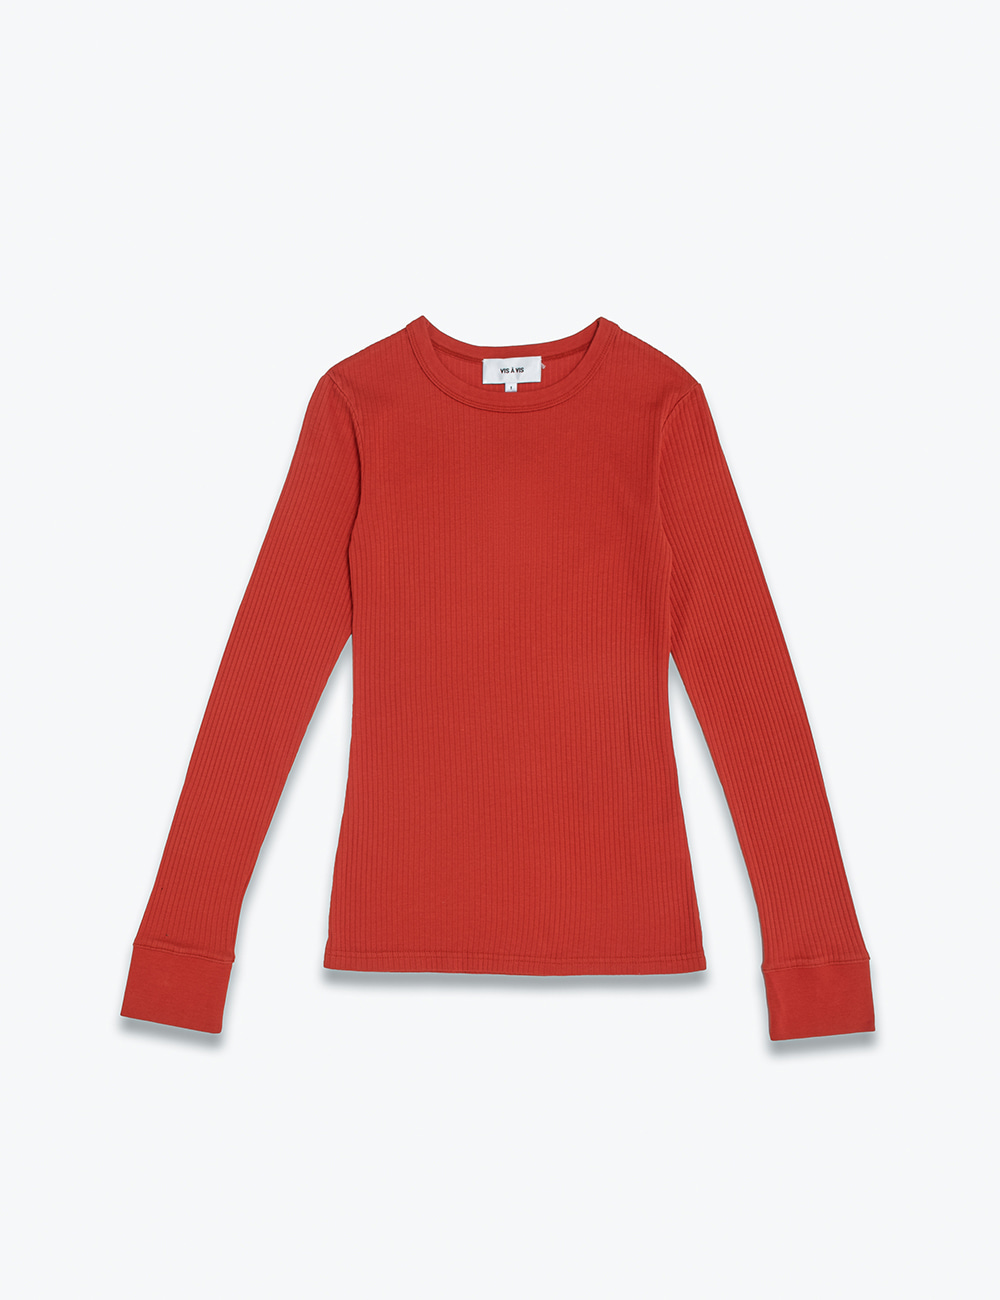 BROAD STITCH RIB CREW NECK TOP